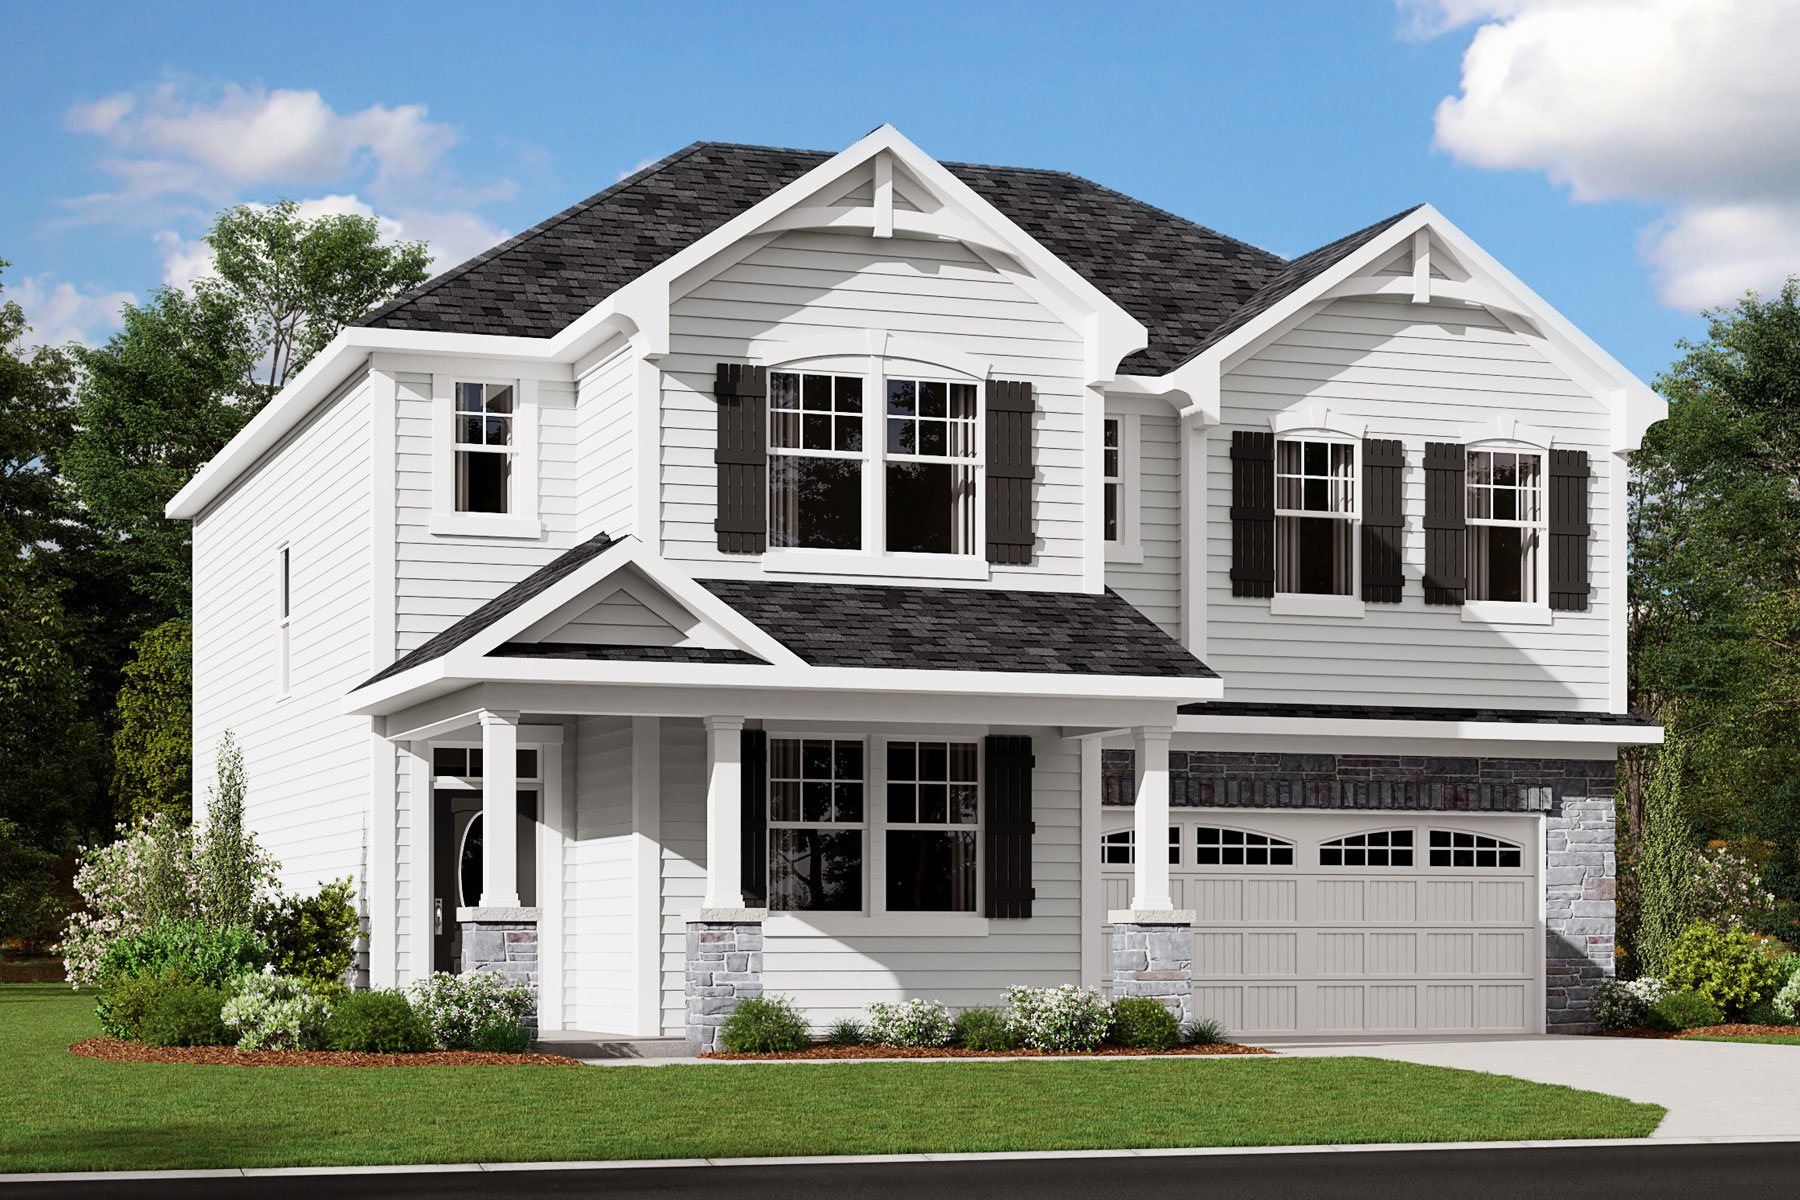 Decker Plan elevationfrenchcountry_benttree_decker at Bent Tree in Fuquay-Varina North Carolina by Mattamy Homes